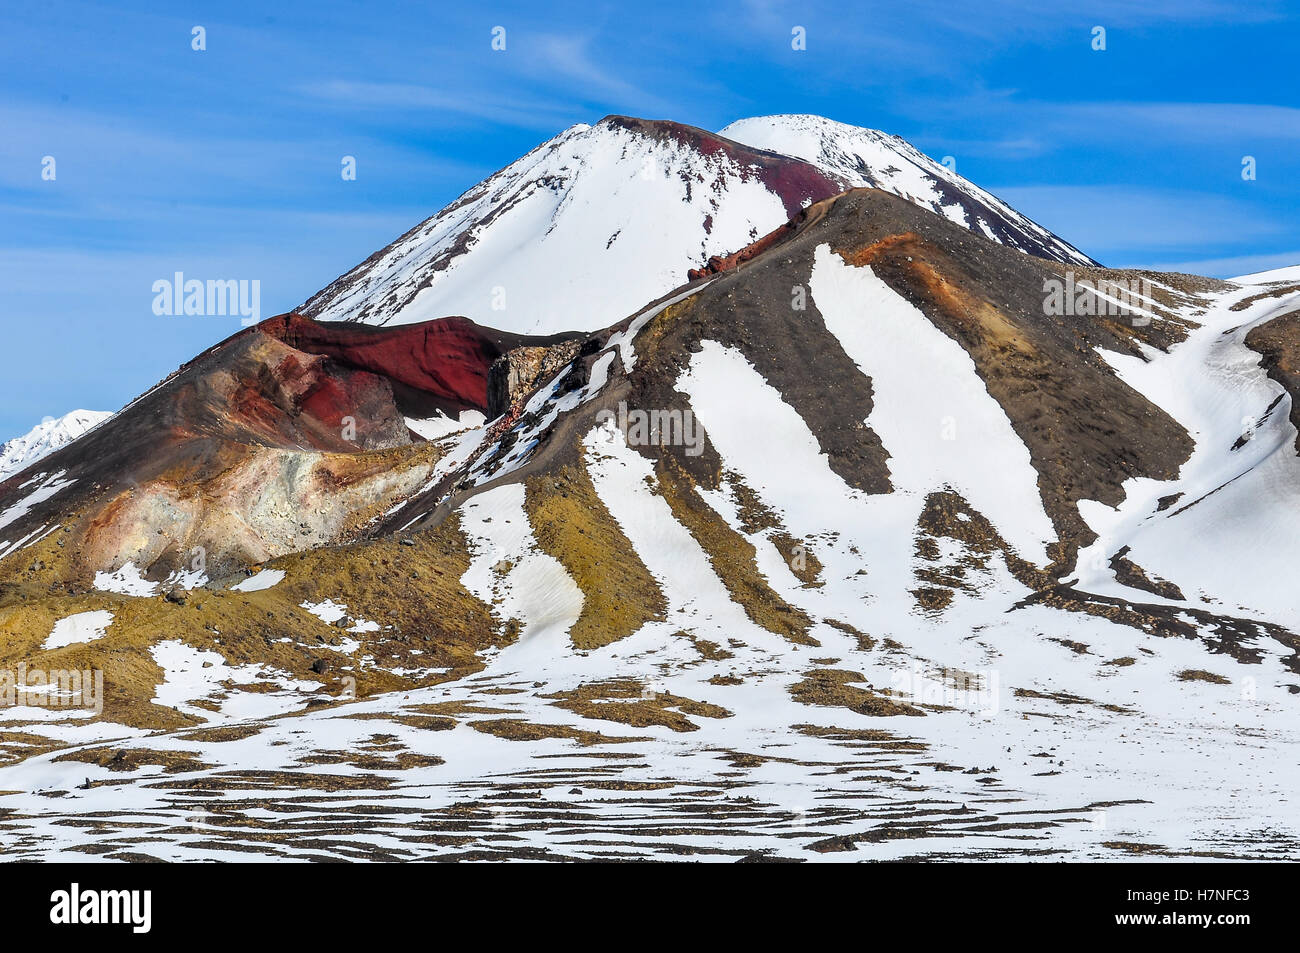 Close view of the Red Crater in the winter Tongariro Alpine Crossing, New Zealand - Stock Image